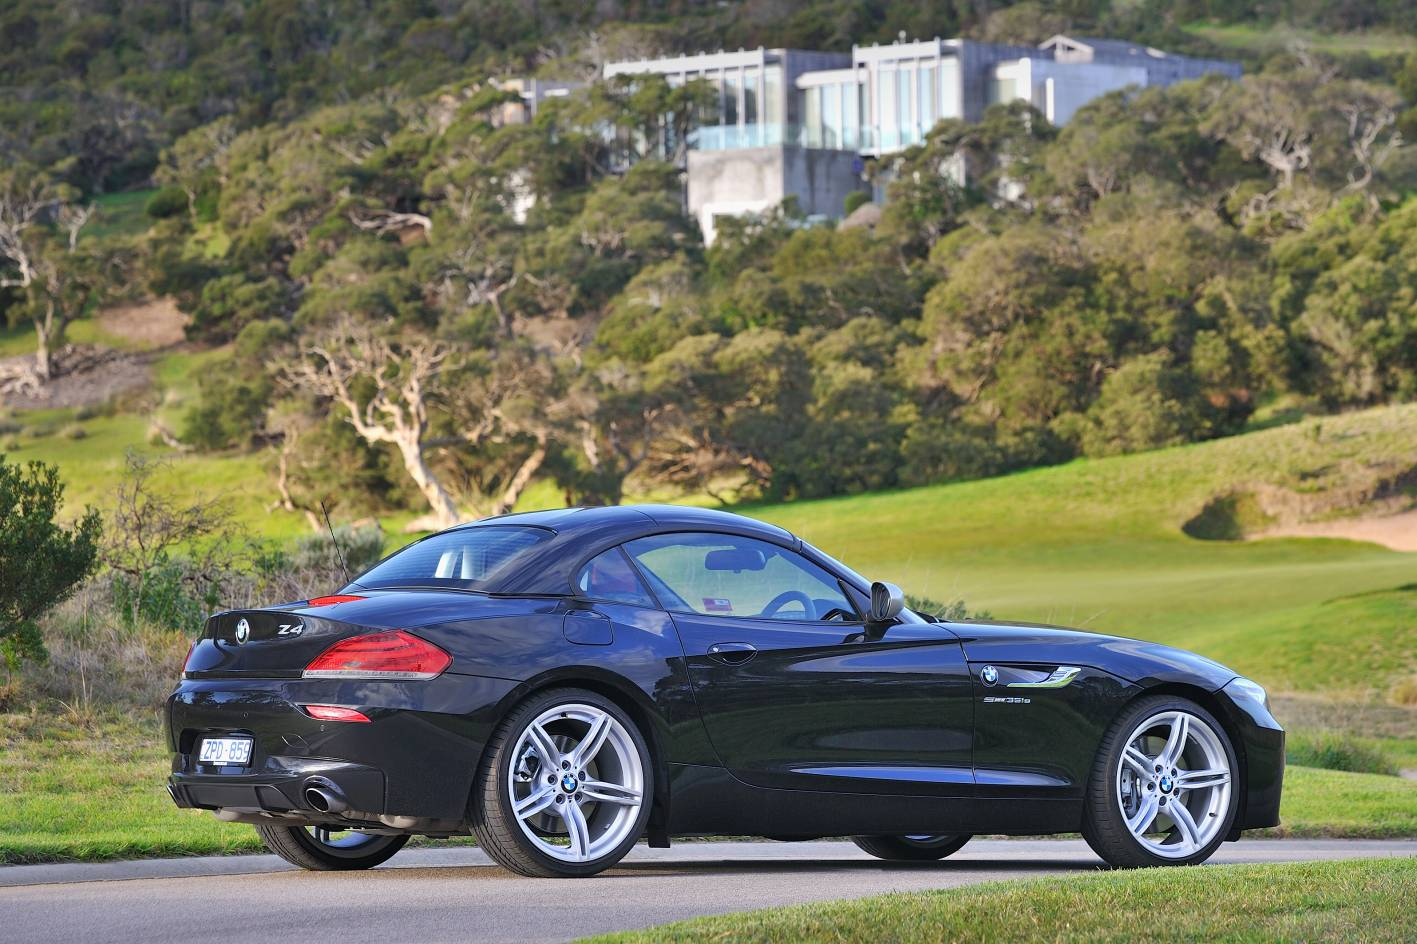 lci bmw e89 z4 pricing for australia released autoevolution. Black Bedroom Furniture Sets. Home Design Ideas